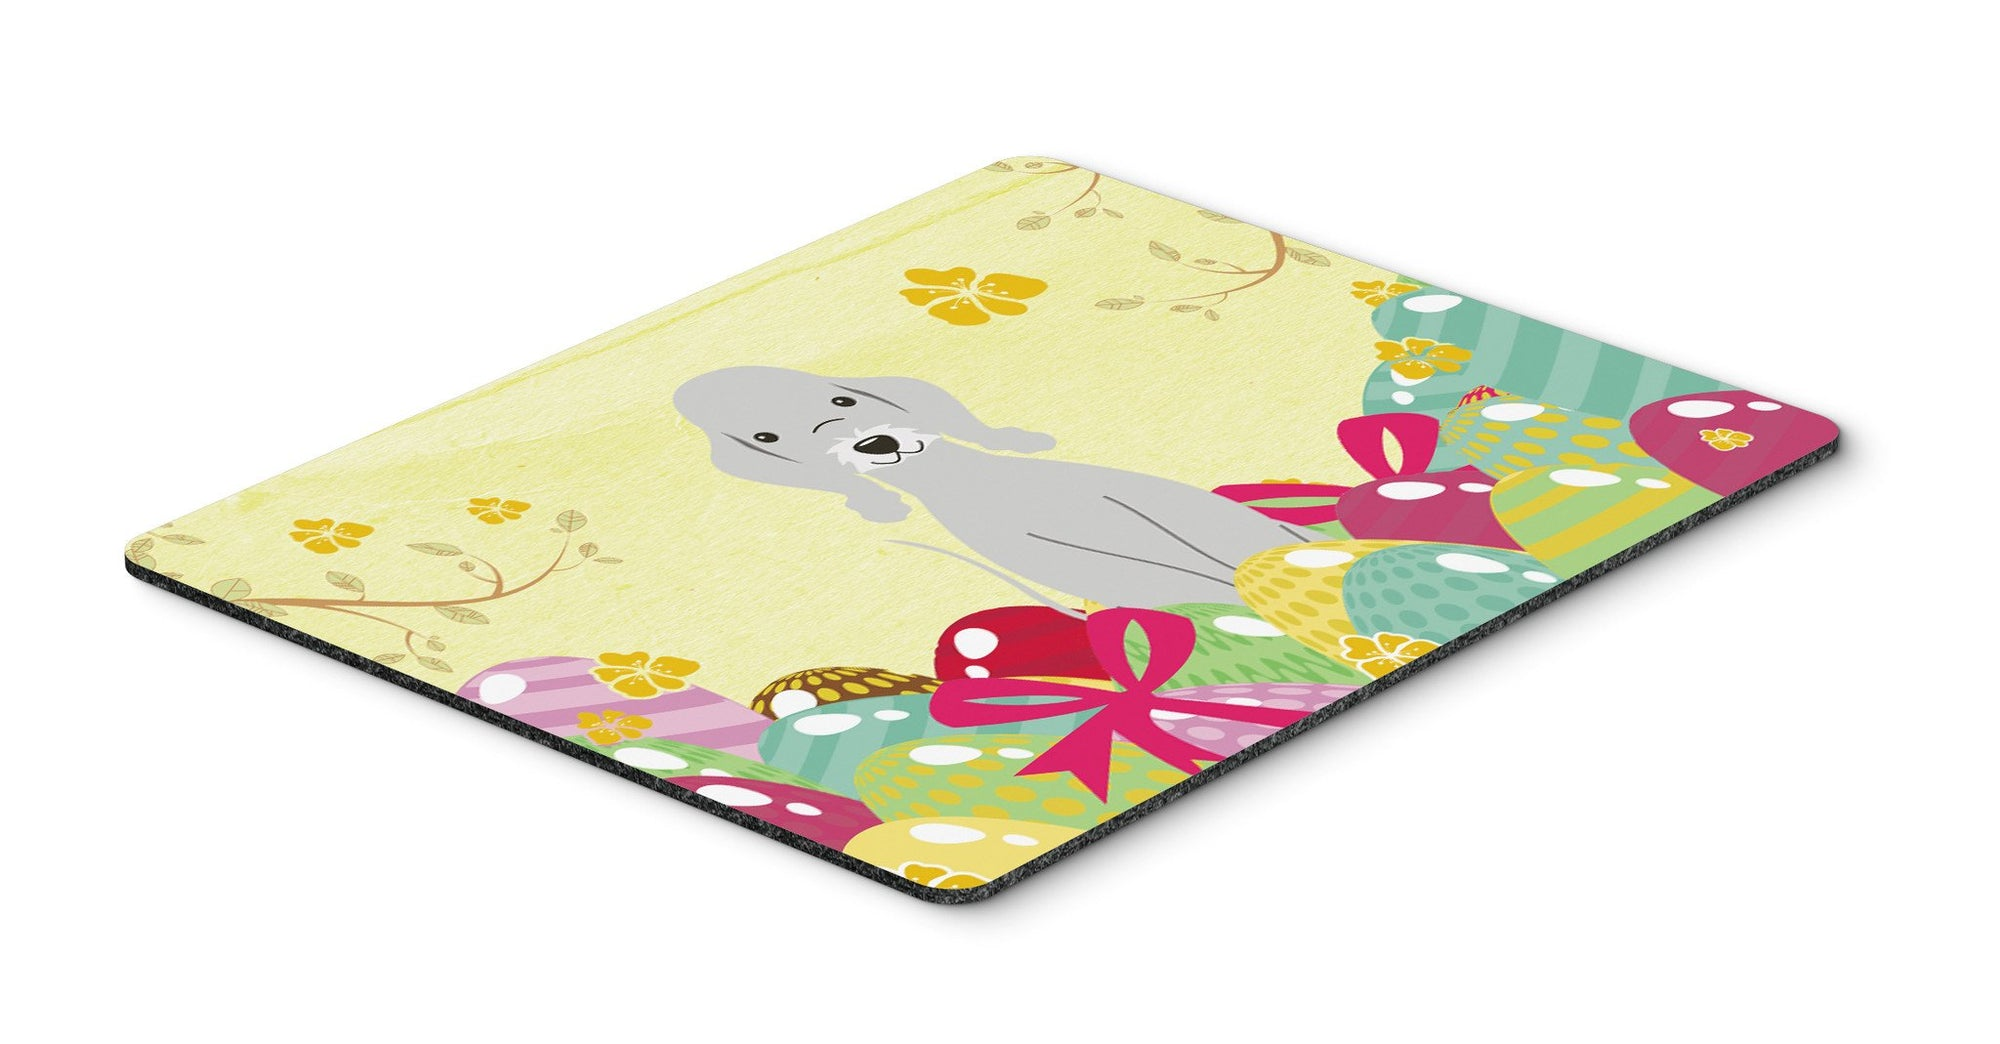 Easter Eggs Bedlington Terrier Blue Mouse Pad, Hot Pad or Trivet BB6090MP by Caroline's Treasures